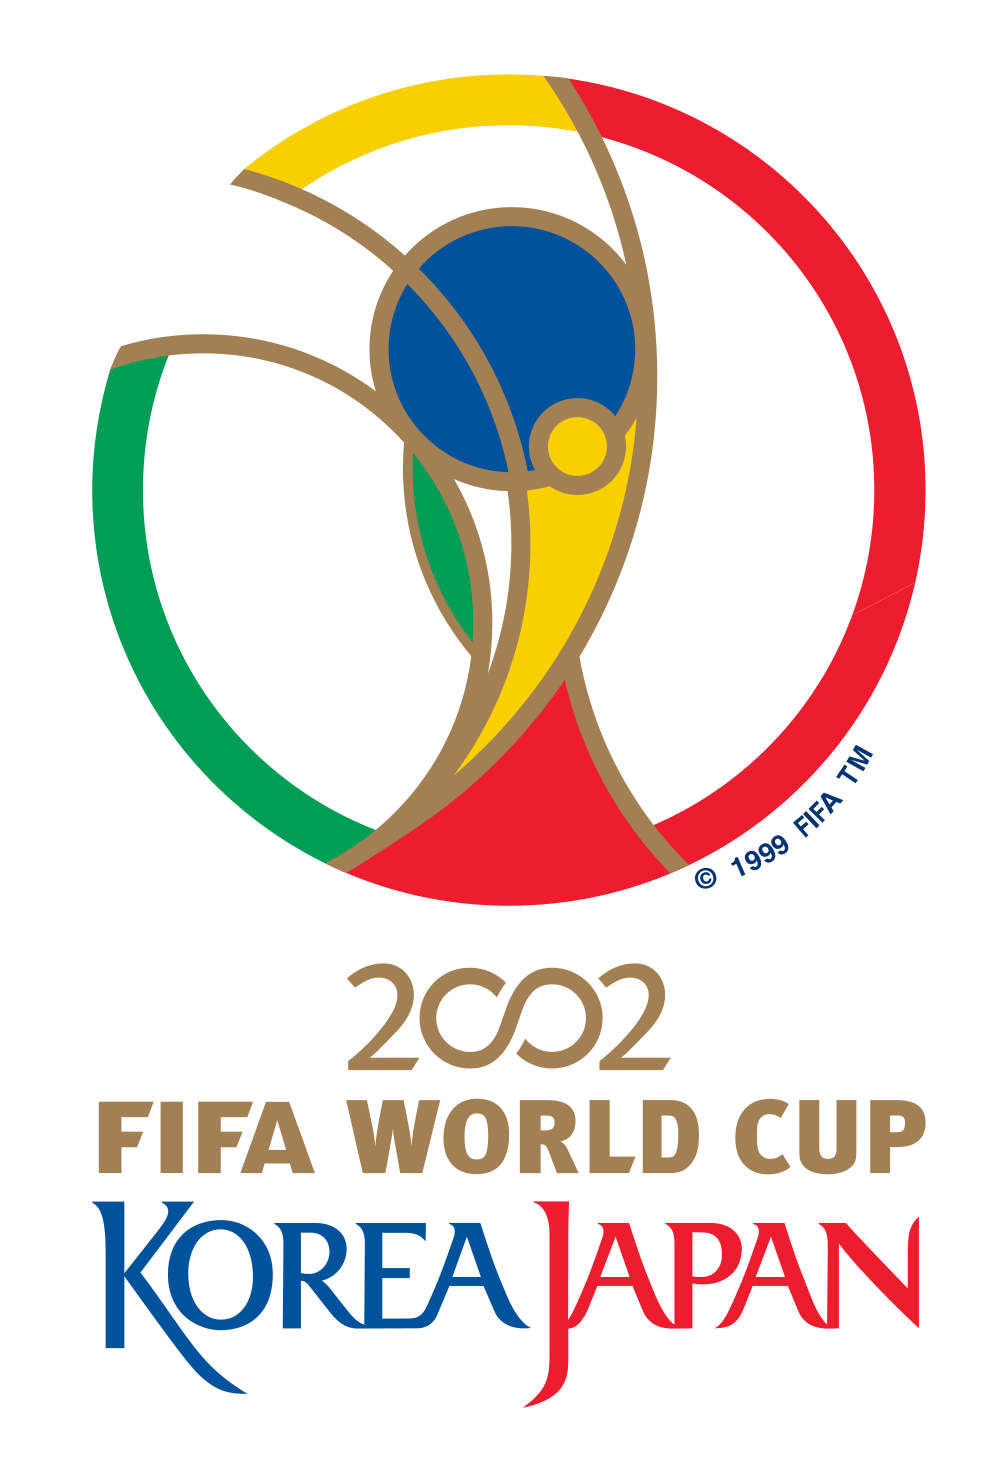 Coupe du monde de Football 2002